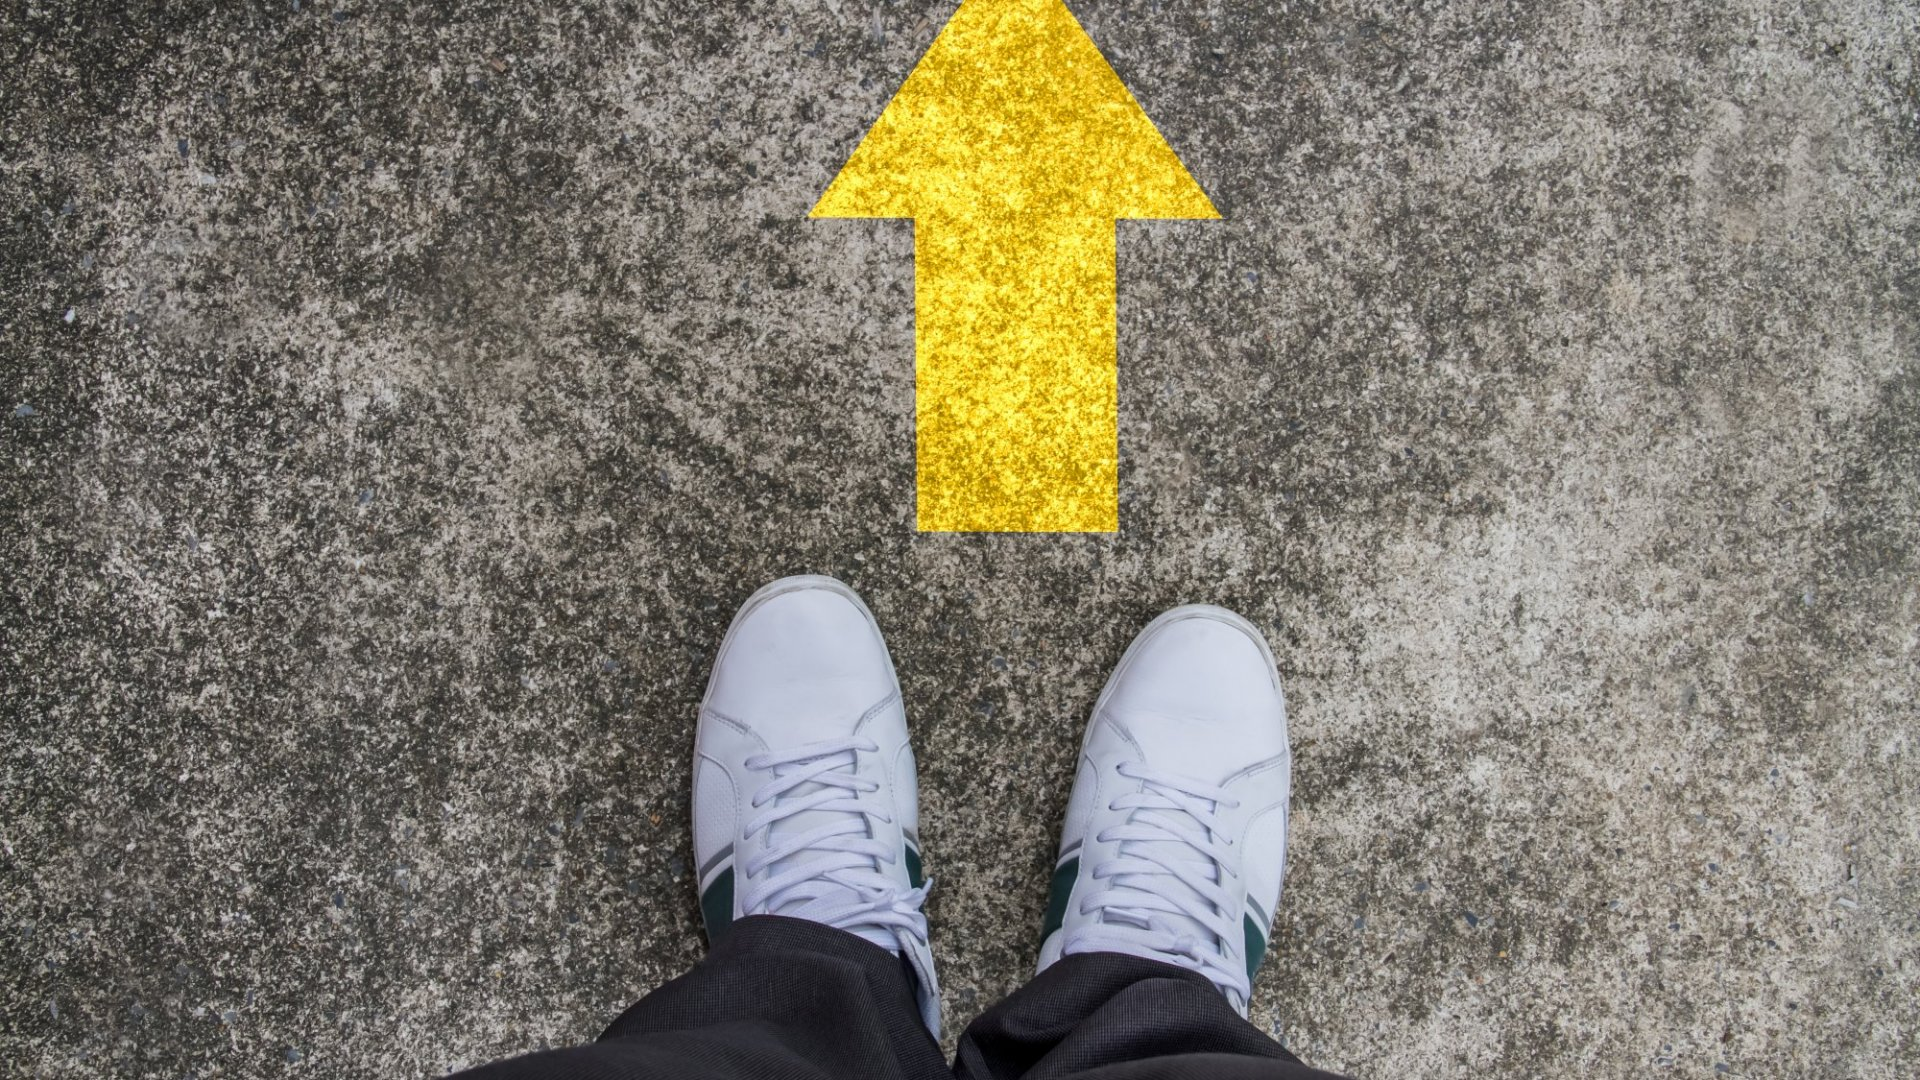 The One Behavior That Stands Between Success and Failure